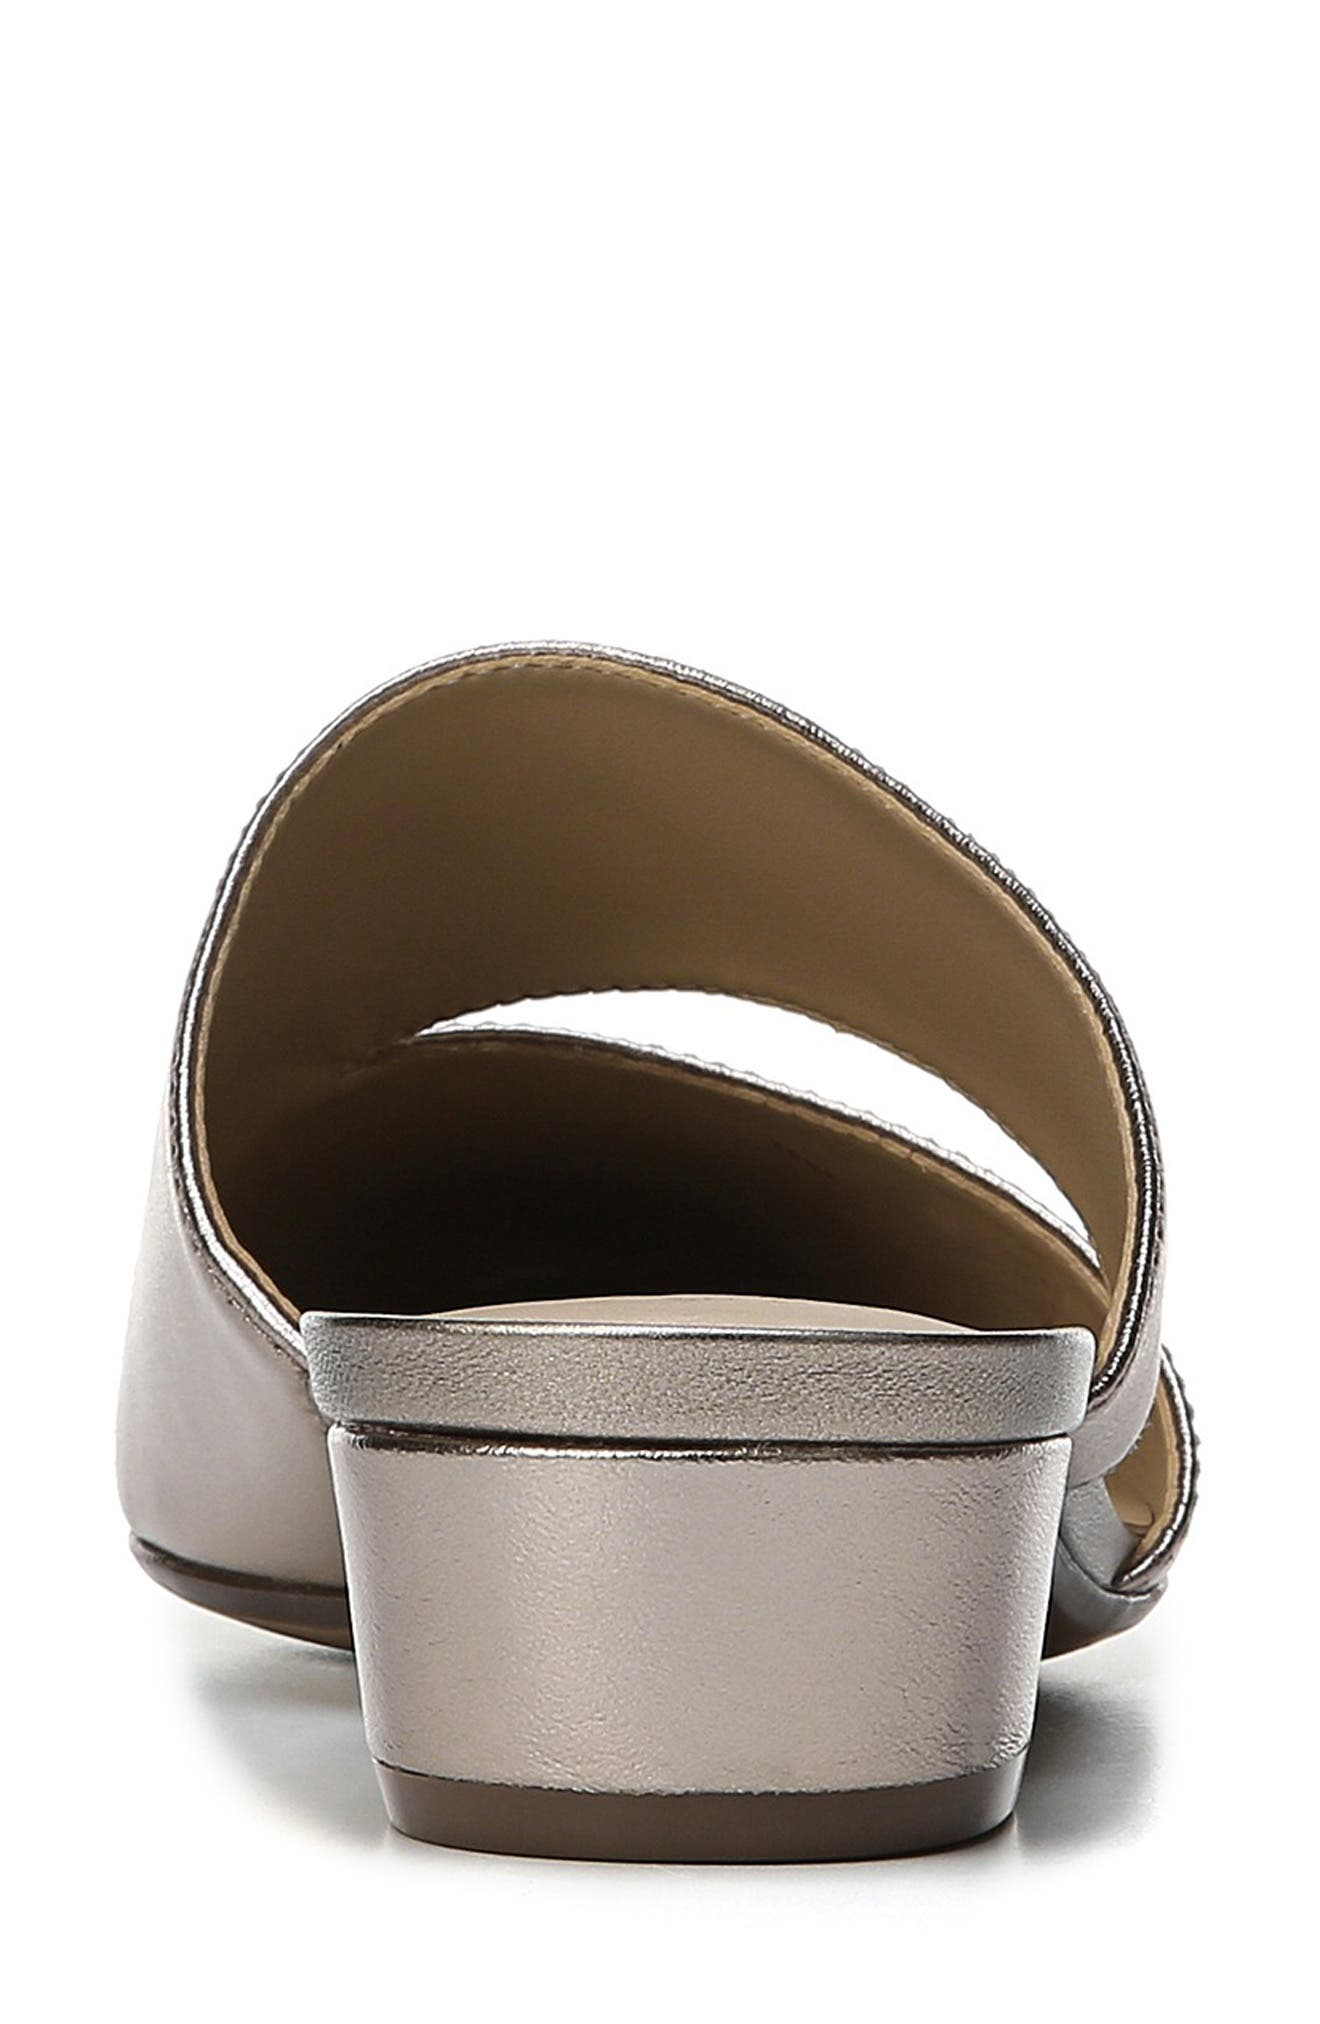 NATURALIZER, Bev Pointy Toe Mule, Alternate thumbnail 7, color, LIGHT BRONZE METALLIC LEATHER